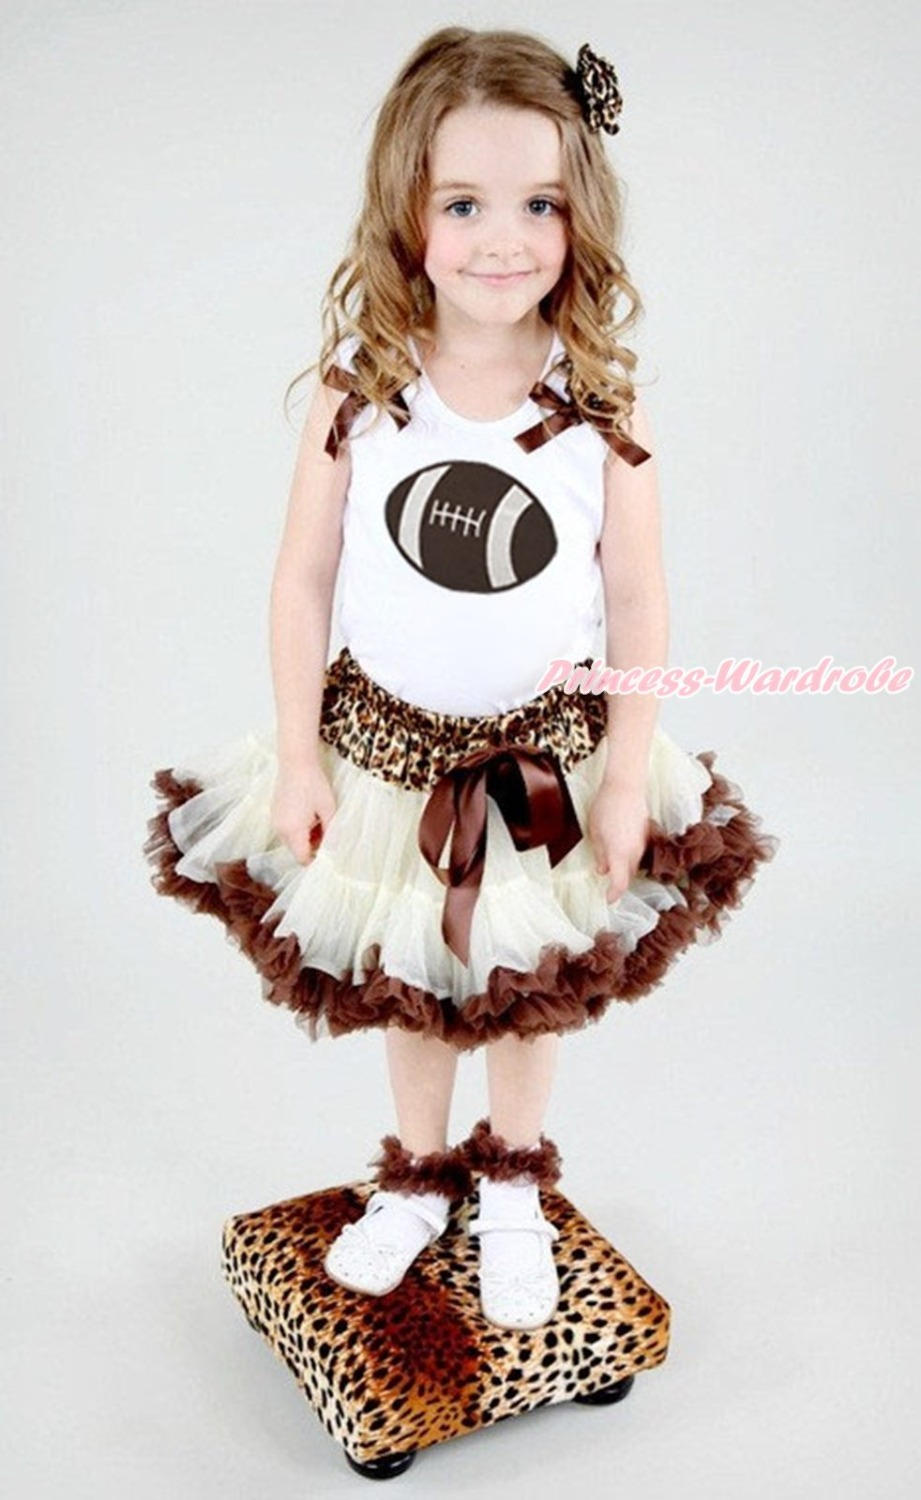 Rugby Ball Sports White Top Leopard Waist Beige Brown Skirt Girl Outfit Set 1-8Y pgi 425 cli 425 refillable ink cartridges for canon pgi425 pixma ip4840 mg5140 ip4940 ix6540 mg5240 mg5340 mx714 mx884 mx894